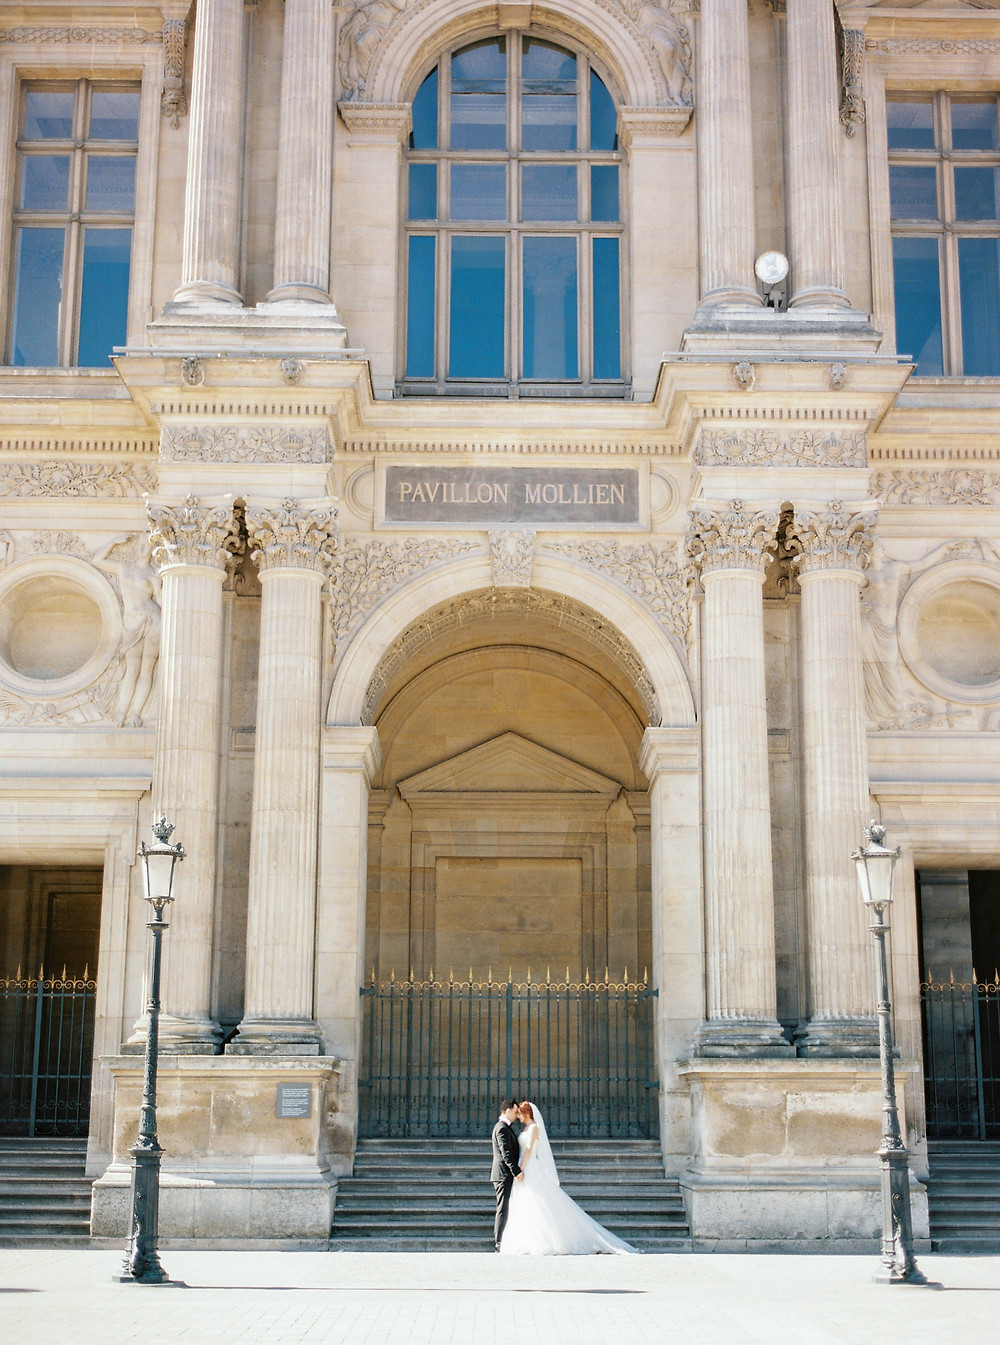 Honeymoon photoshoot in the Louvre